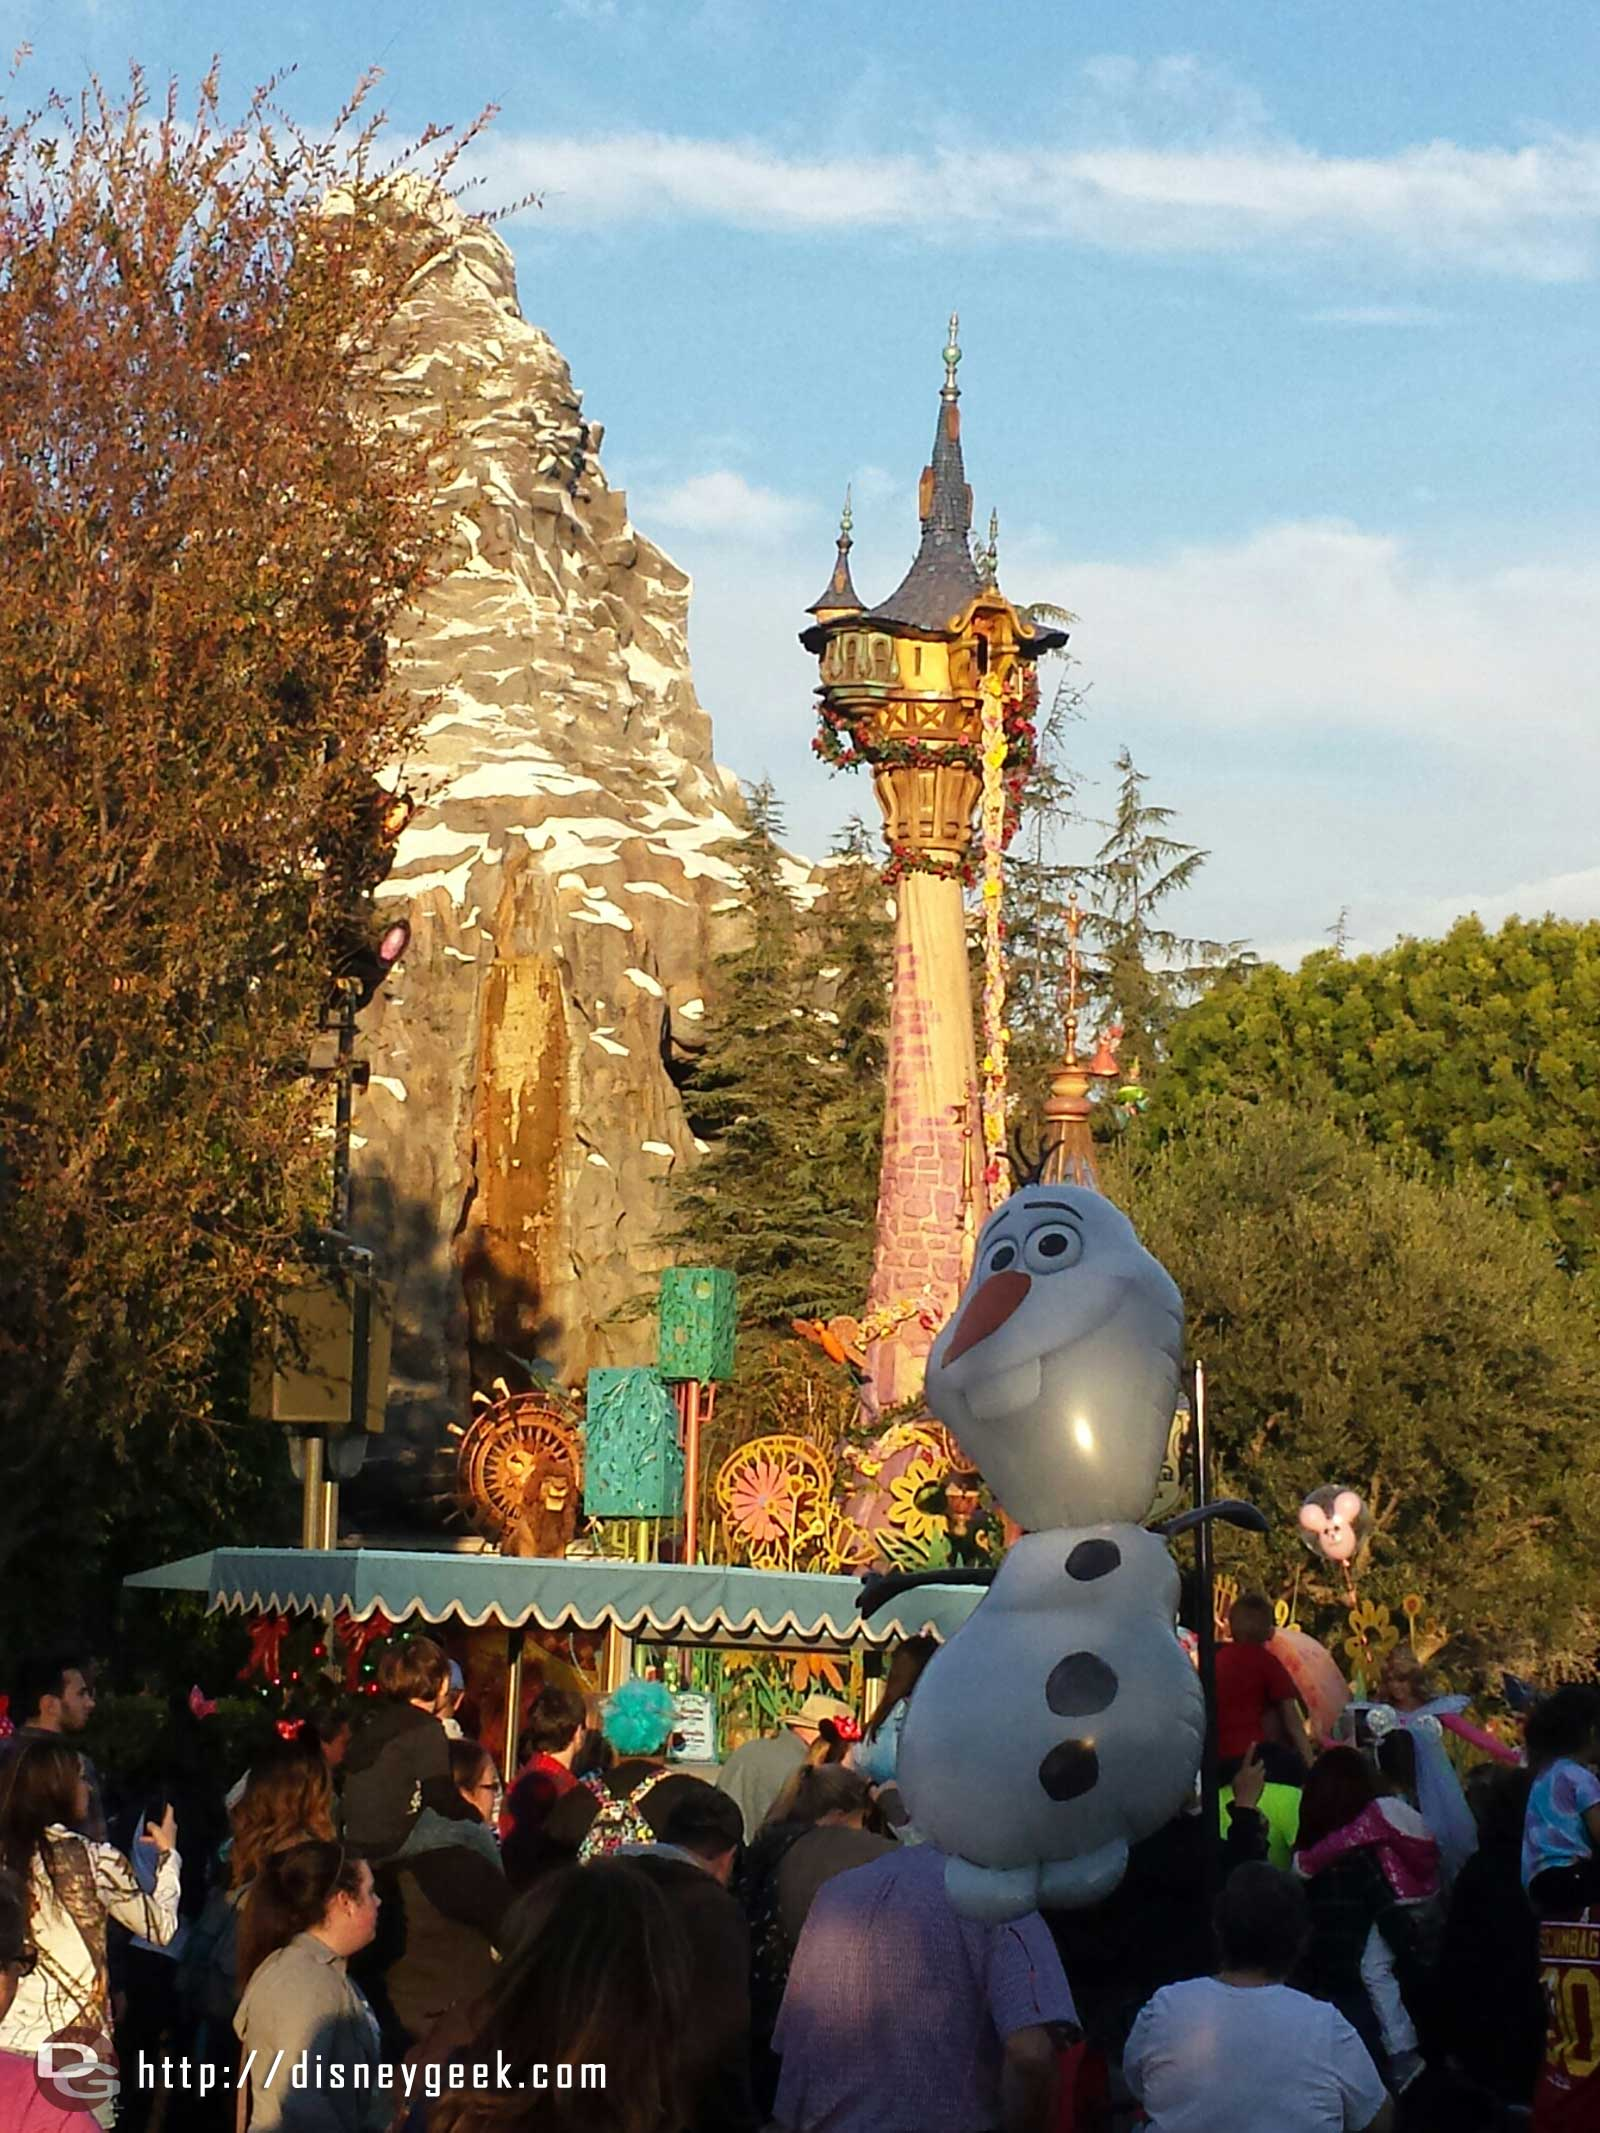 Olaf watching the return of Soundsational earlier today #Disneyland